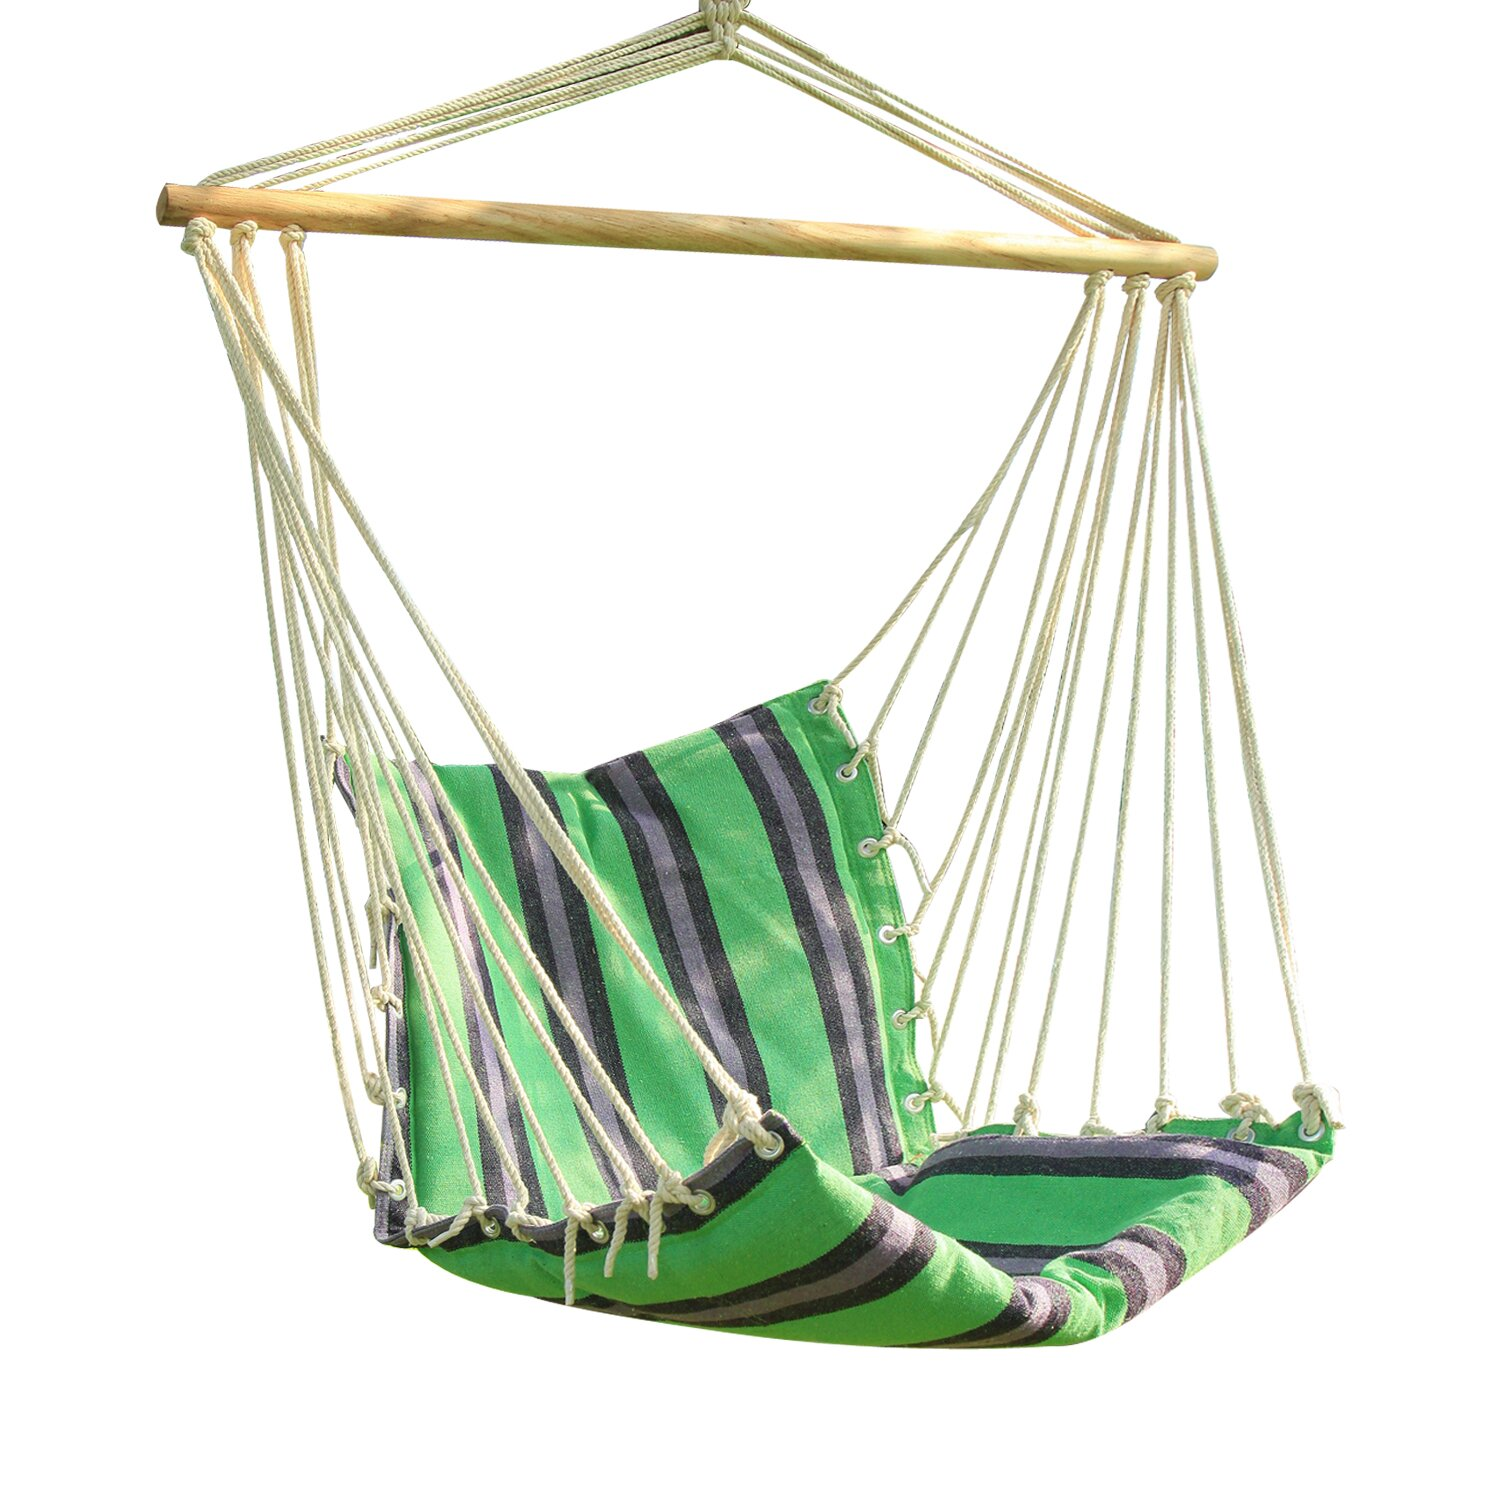 Outdoor Patio Furniture  Chair Hammocks AdecoTrading SKU ADEC1115